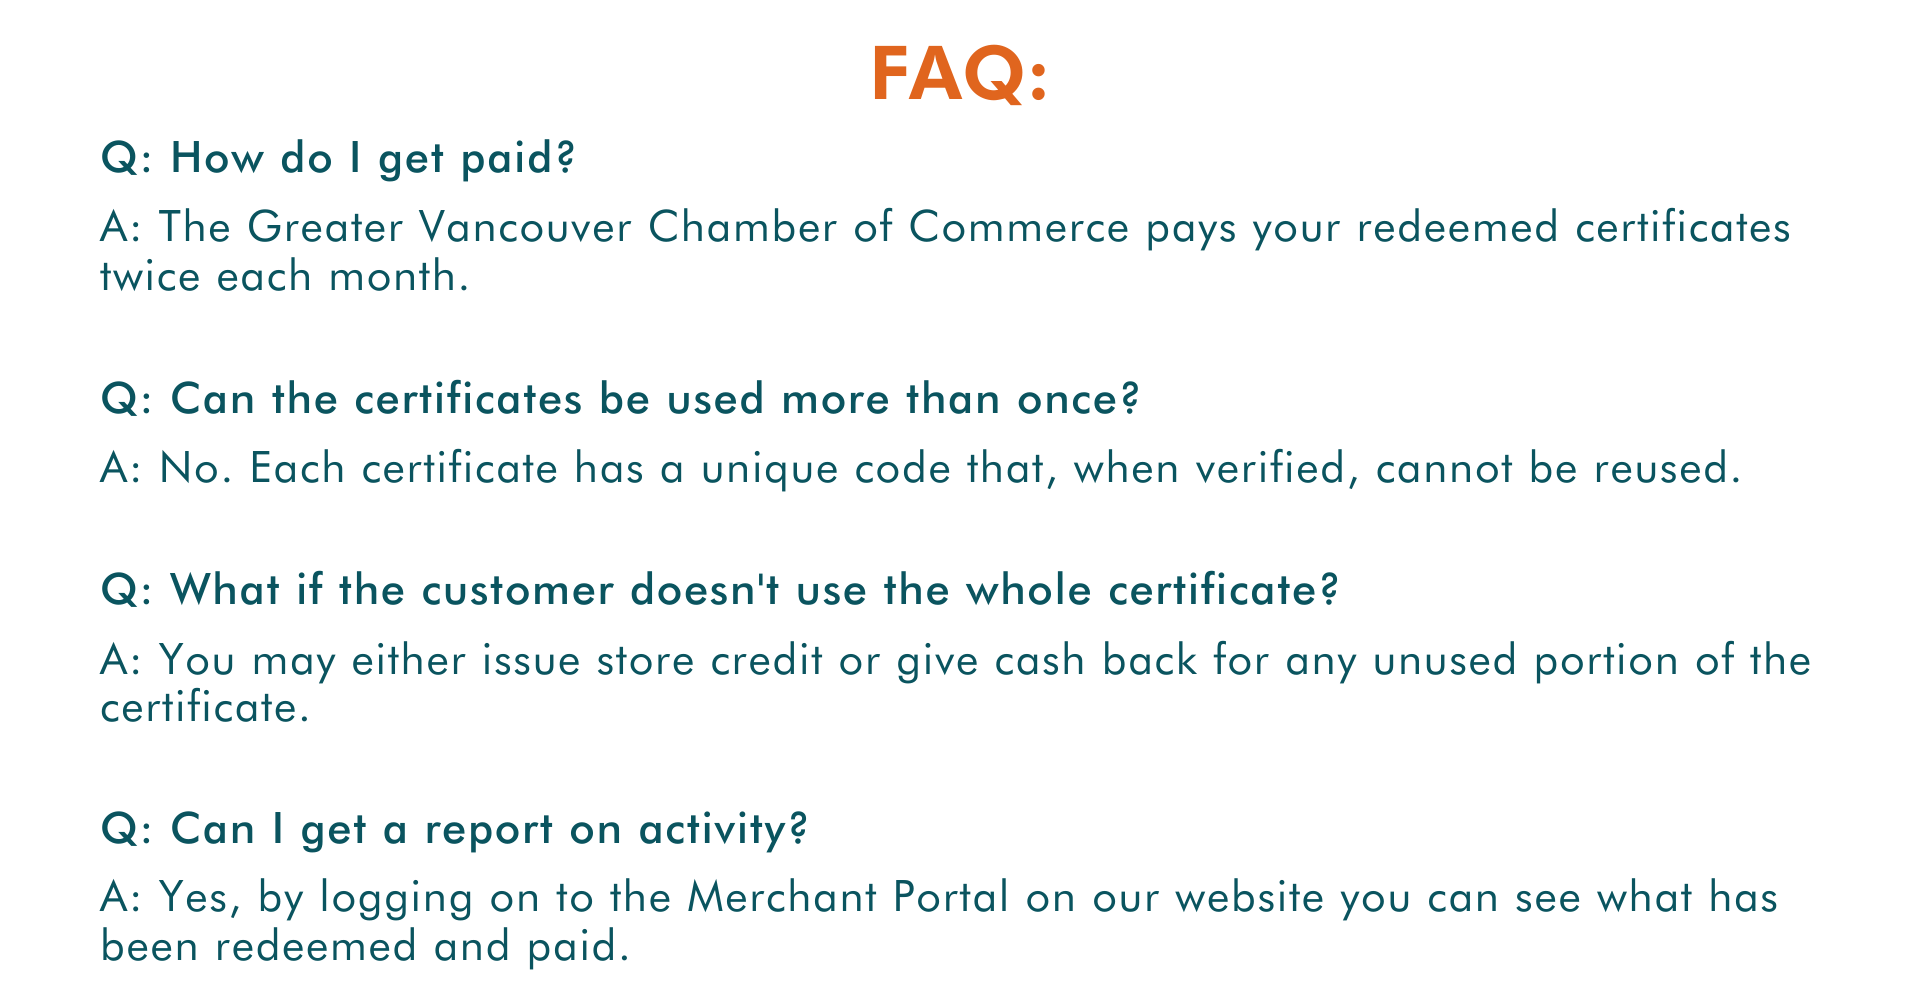 Q: How do I get paid? A: The Greater Vancouver Chamber of Commerce pays your redeemed certificates twice each month. Q: Can the certificates be used more than once? A: No. Each certificate has a unique code that, when verified, cannot be reused. Q: What if the customer doesn't use the whole certificate? A: You may either issue store credit or give cash back for any unused portion of the certificate. Q: Can I get a report on activity? A: Yes, by logging on to the Merchant Portal on our website you can see what has been redeemed and paid. FAQ